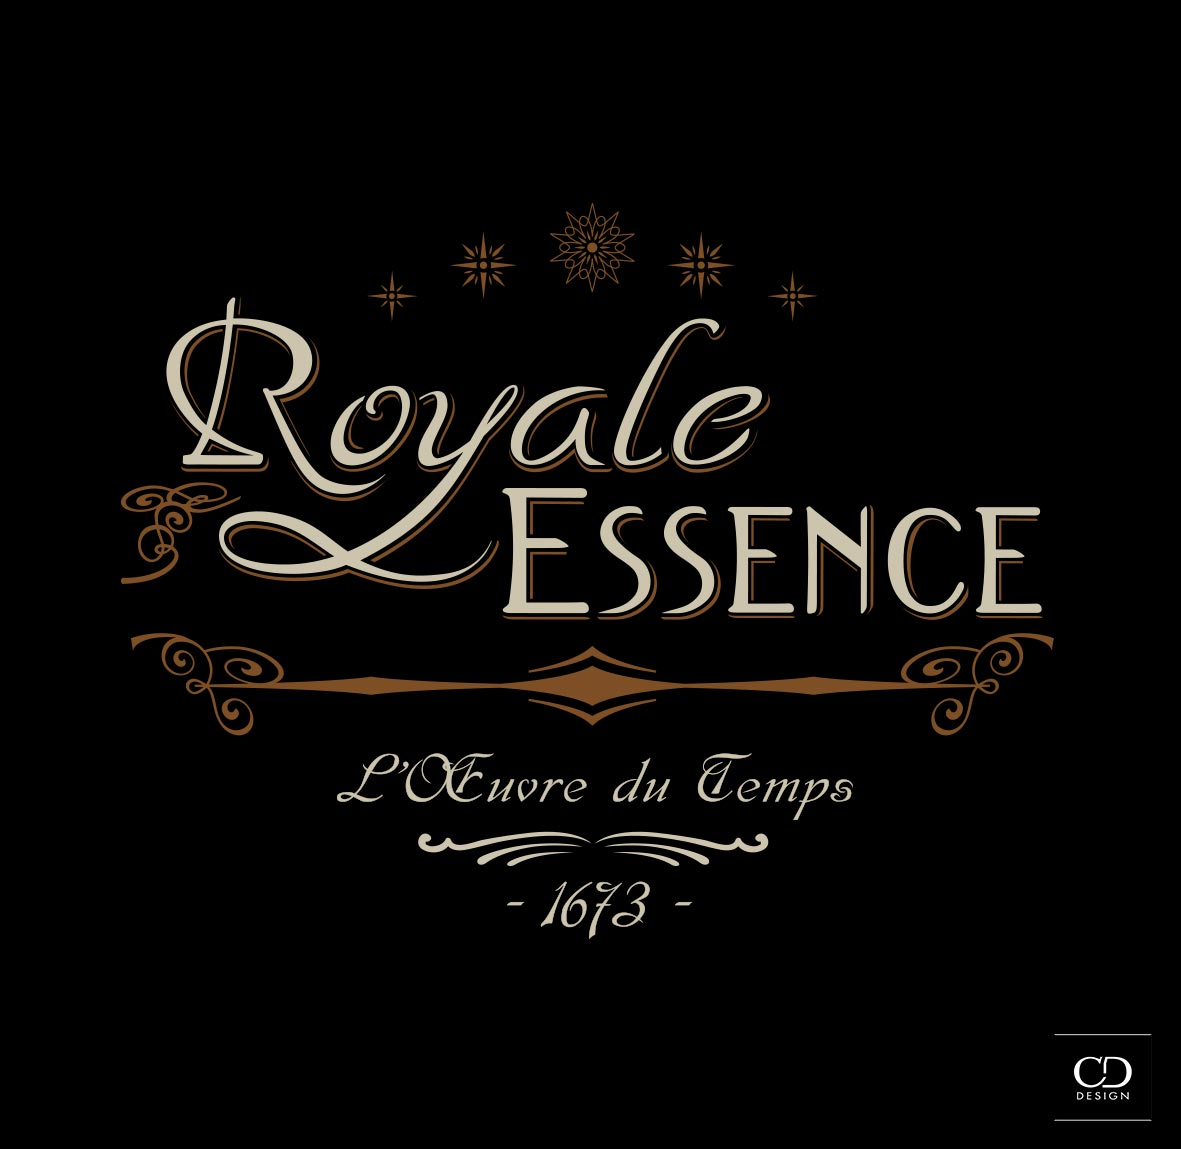 ROYALE ESSENCE